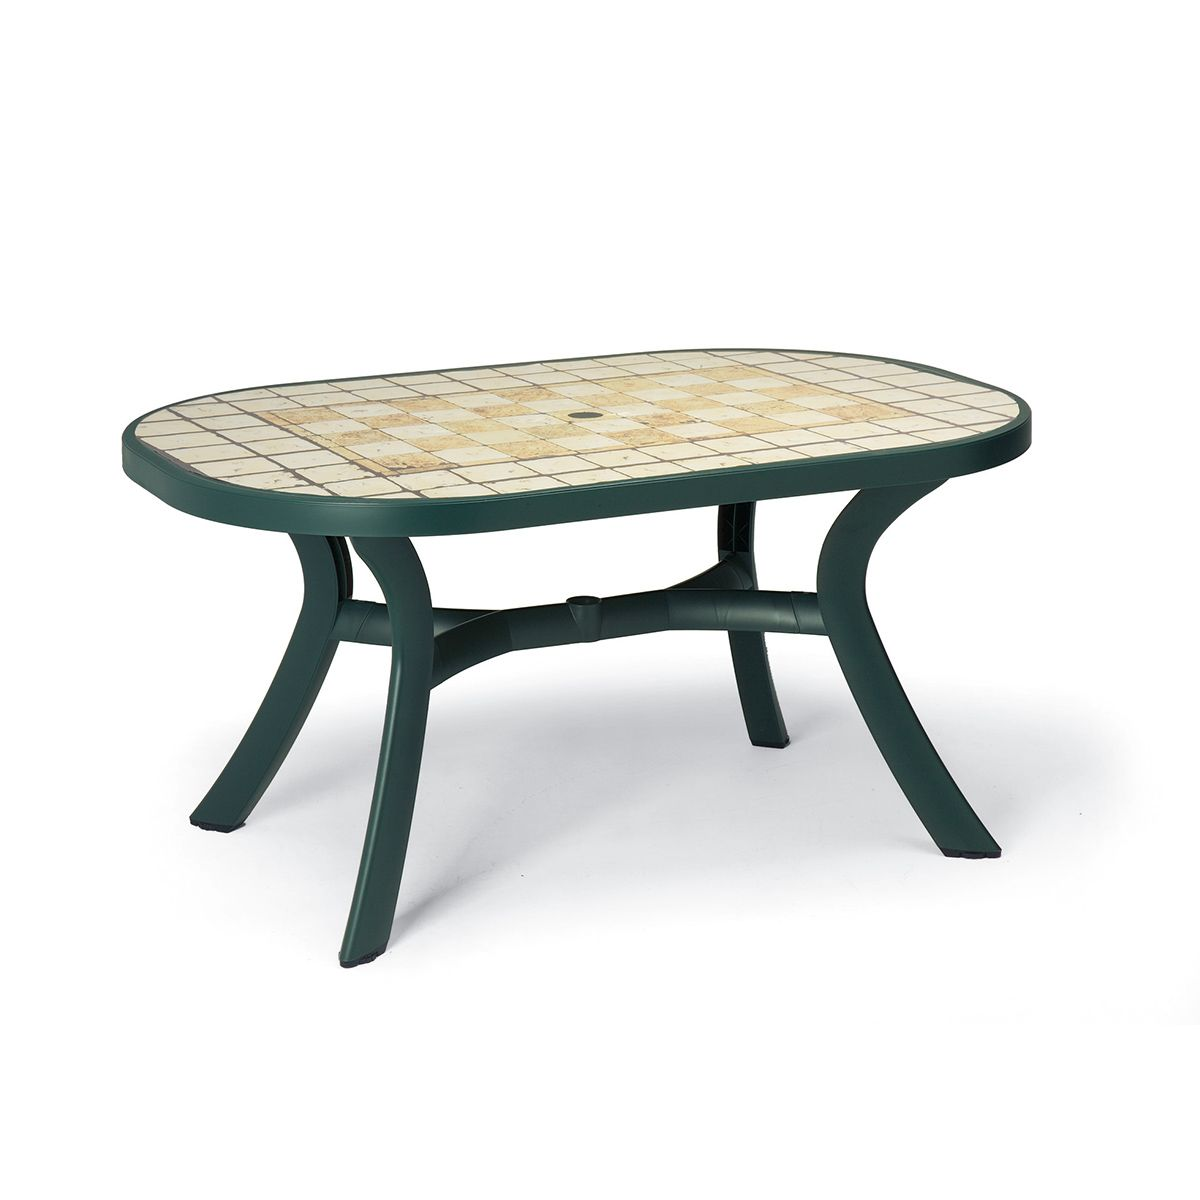 Table De Jardin Plastique Toscana Ovale Zendart Design